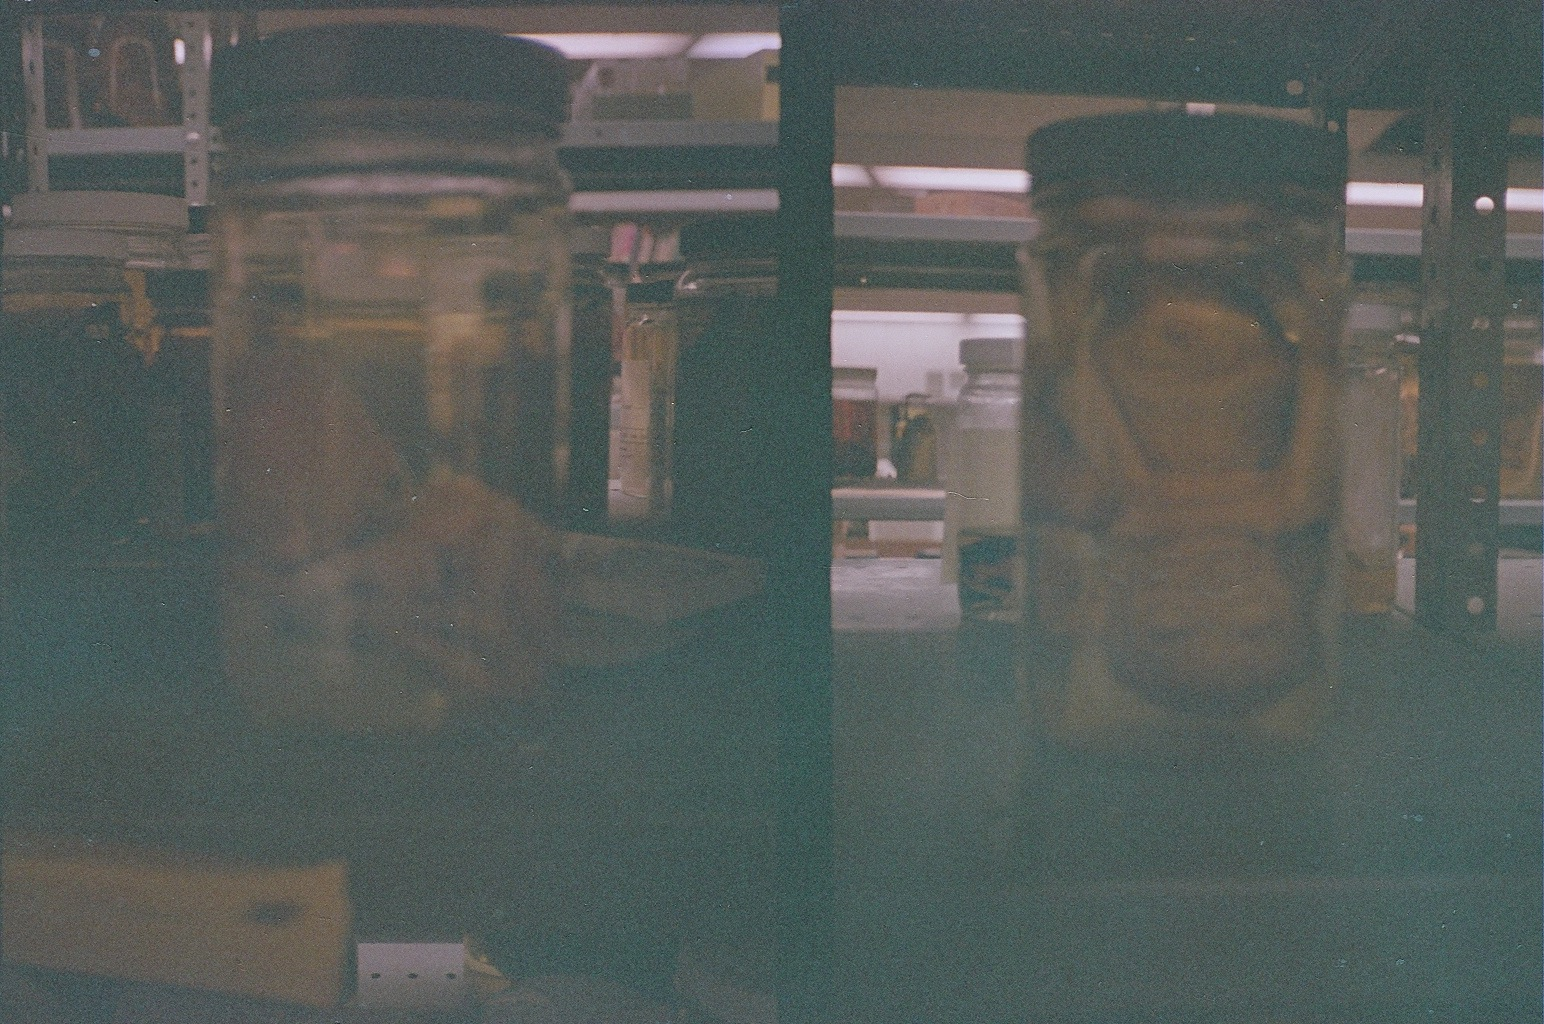 Left: human fetus. Right: chimpanzee fetus. Taken at the Field Museum, October 2013. Canon Demi (half-frame) camera with expired film - excuse the dark exposure.